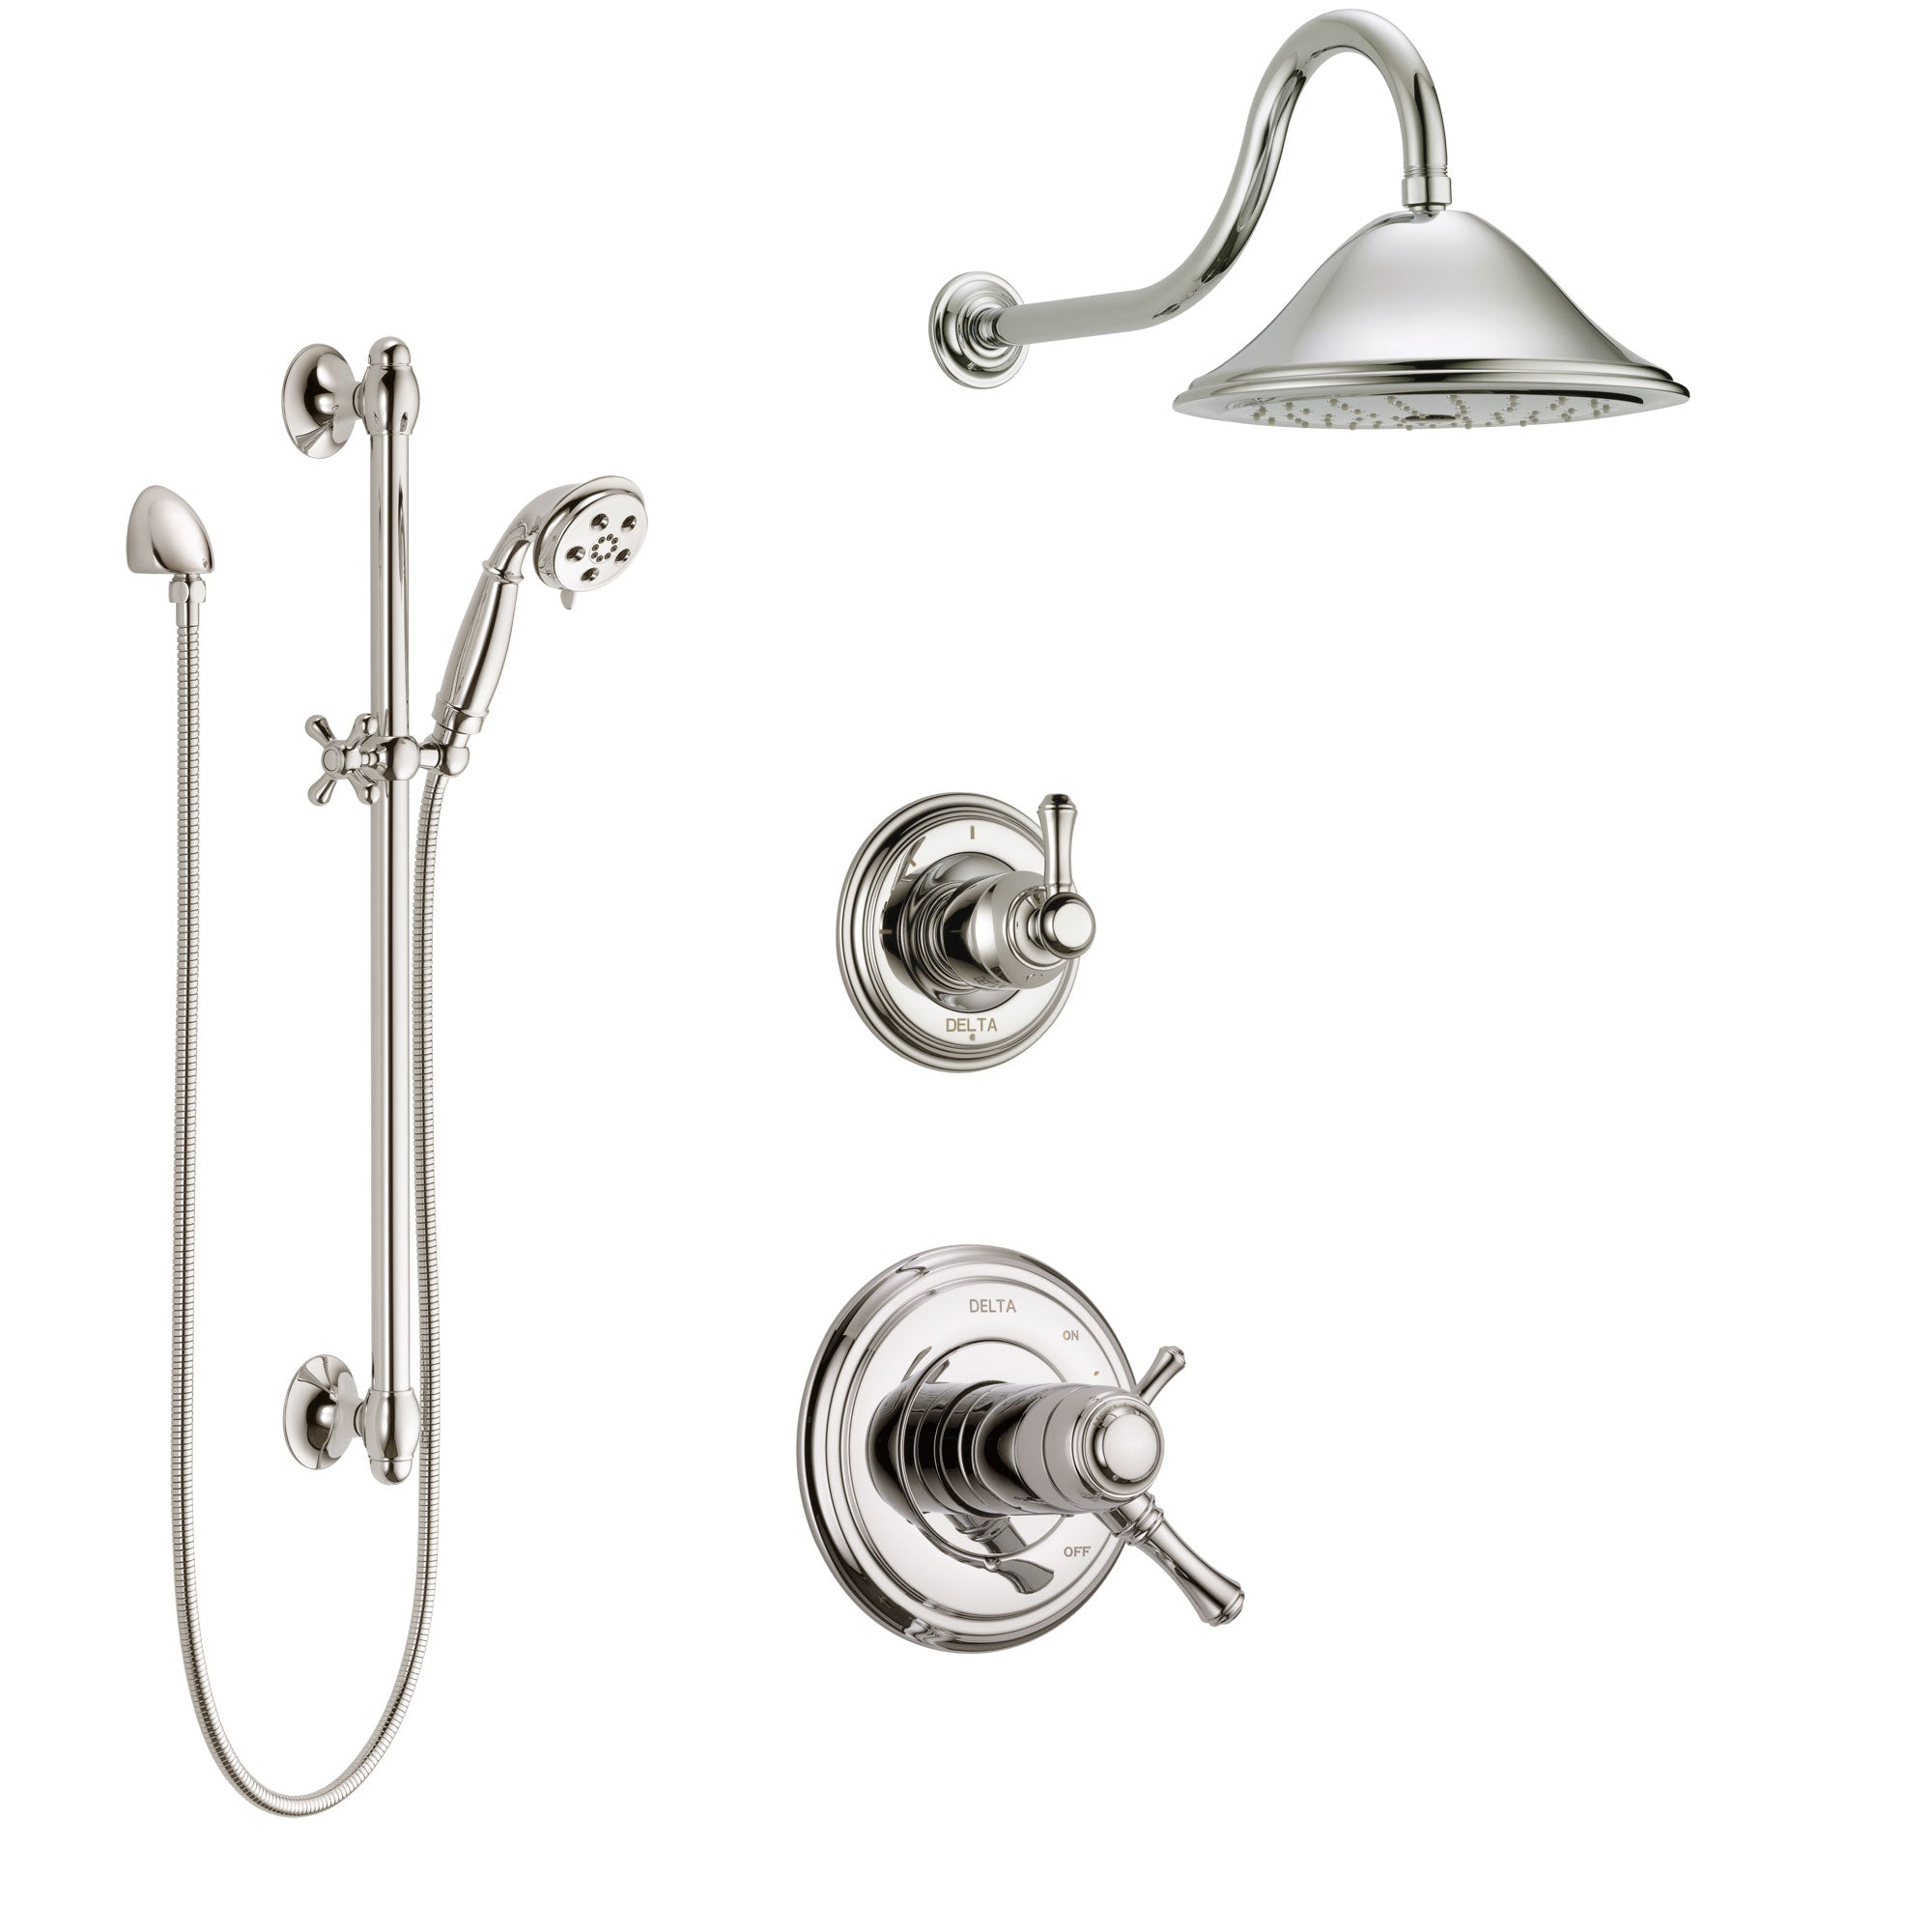 Delta Cassidy Polished Nickel Shower System with Dual Thermostatic Control Handle, Diverter, Showerhead, and Hand Shower with Slidebar SS17T972PN2